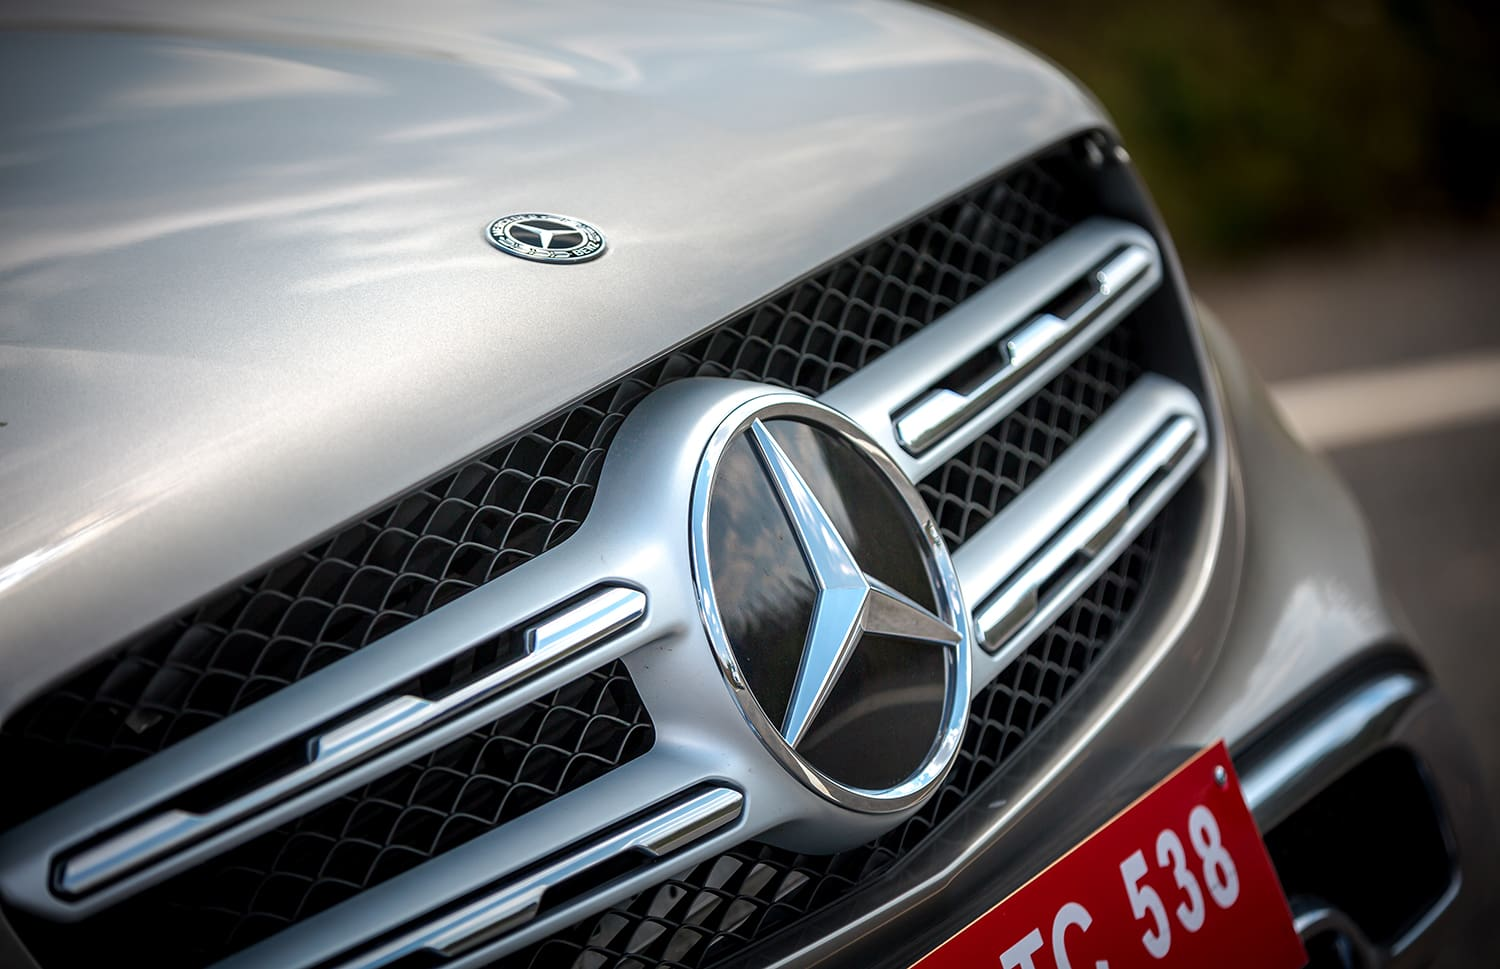 Coronavirus Update: Mercedes-Benz India To Set Up Isolation Wards Near Pune